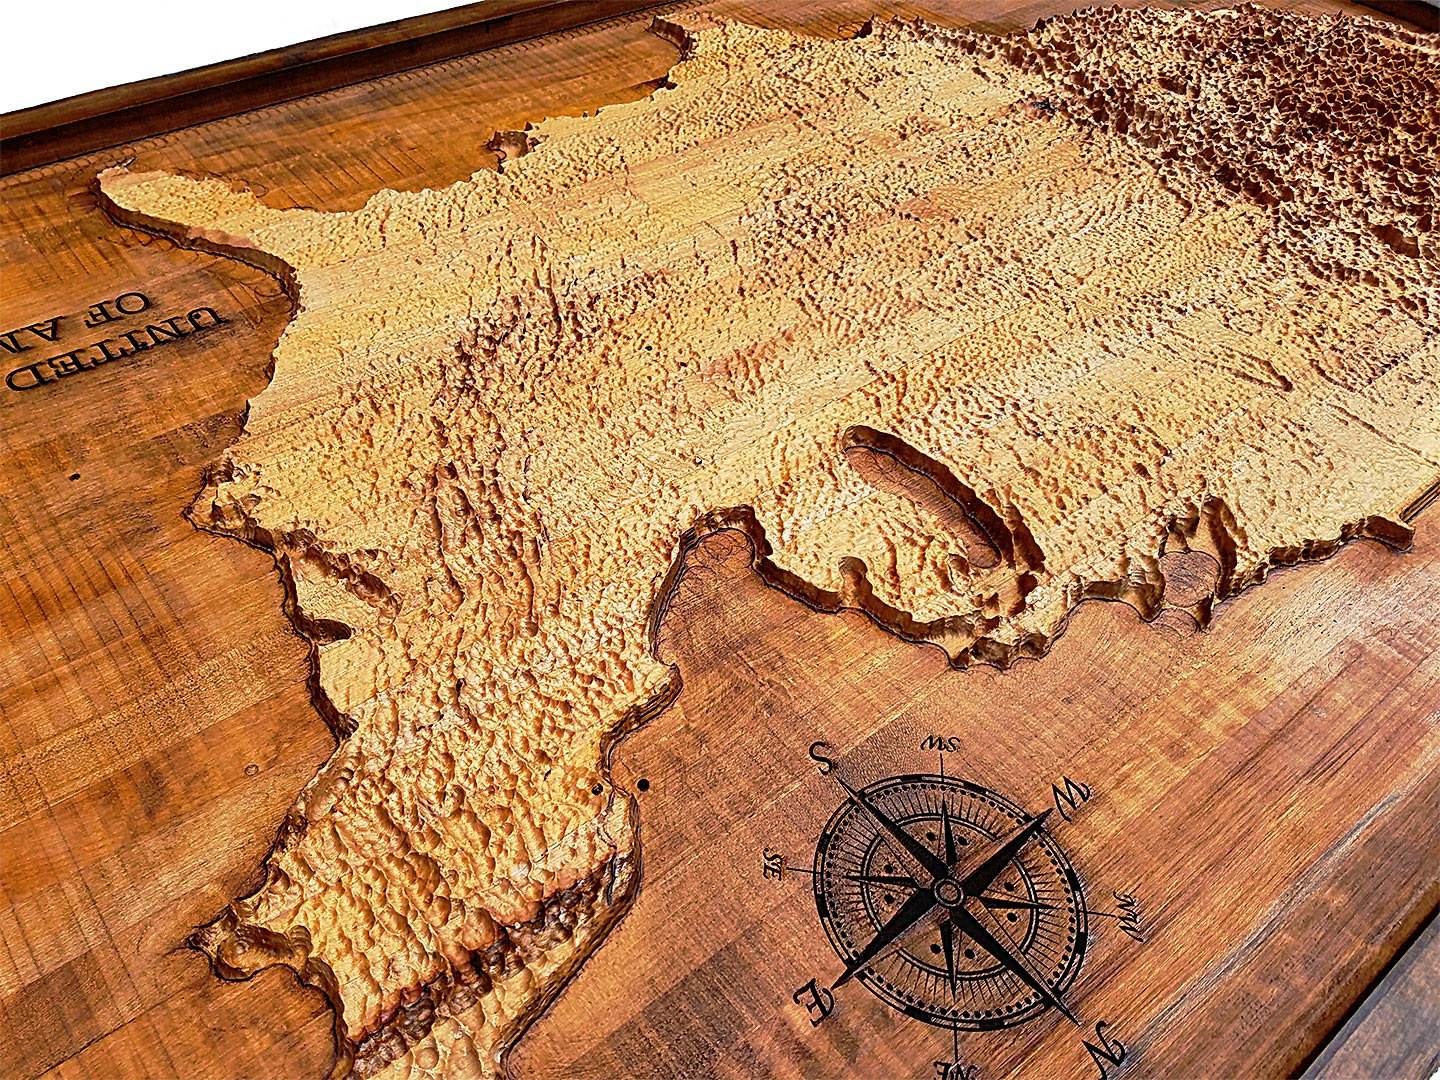 United States Of America Topographical Map From A Varity Of Wood